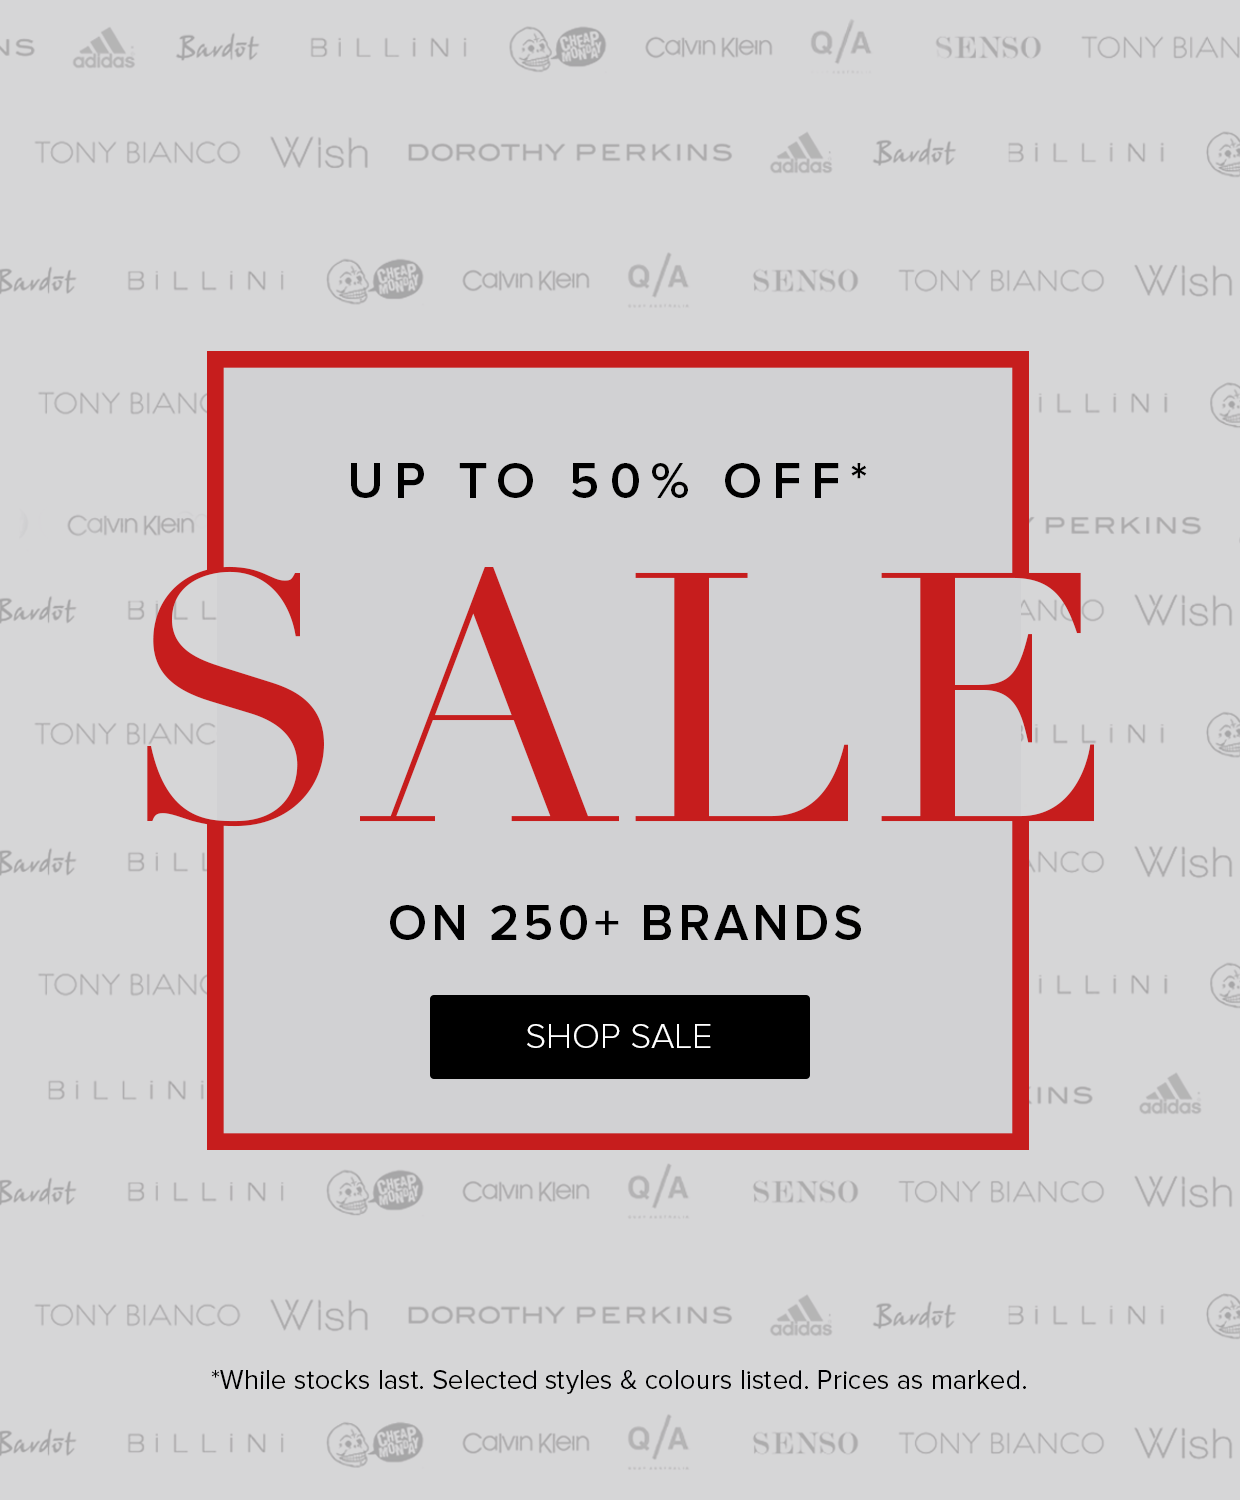 Save up to 50% off on over 250 brands sale at The Iconic.